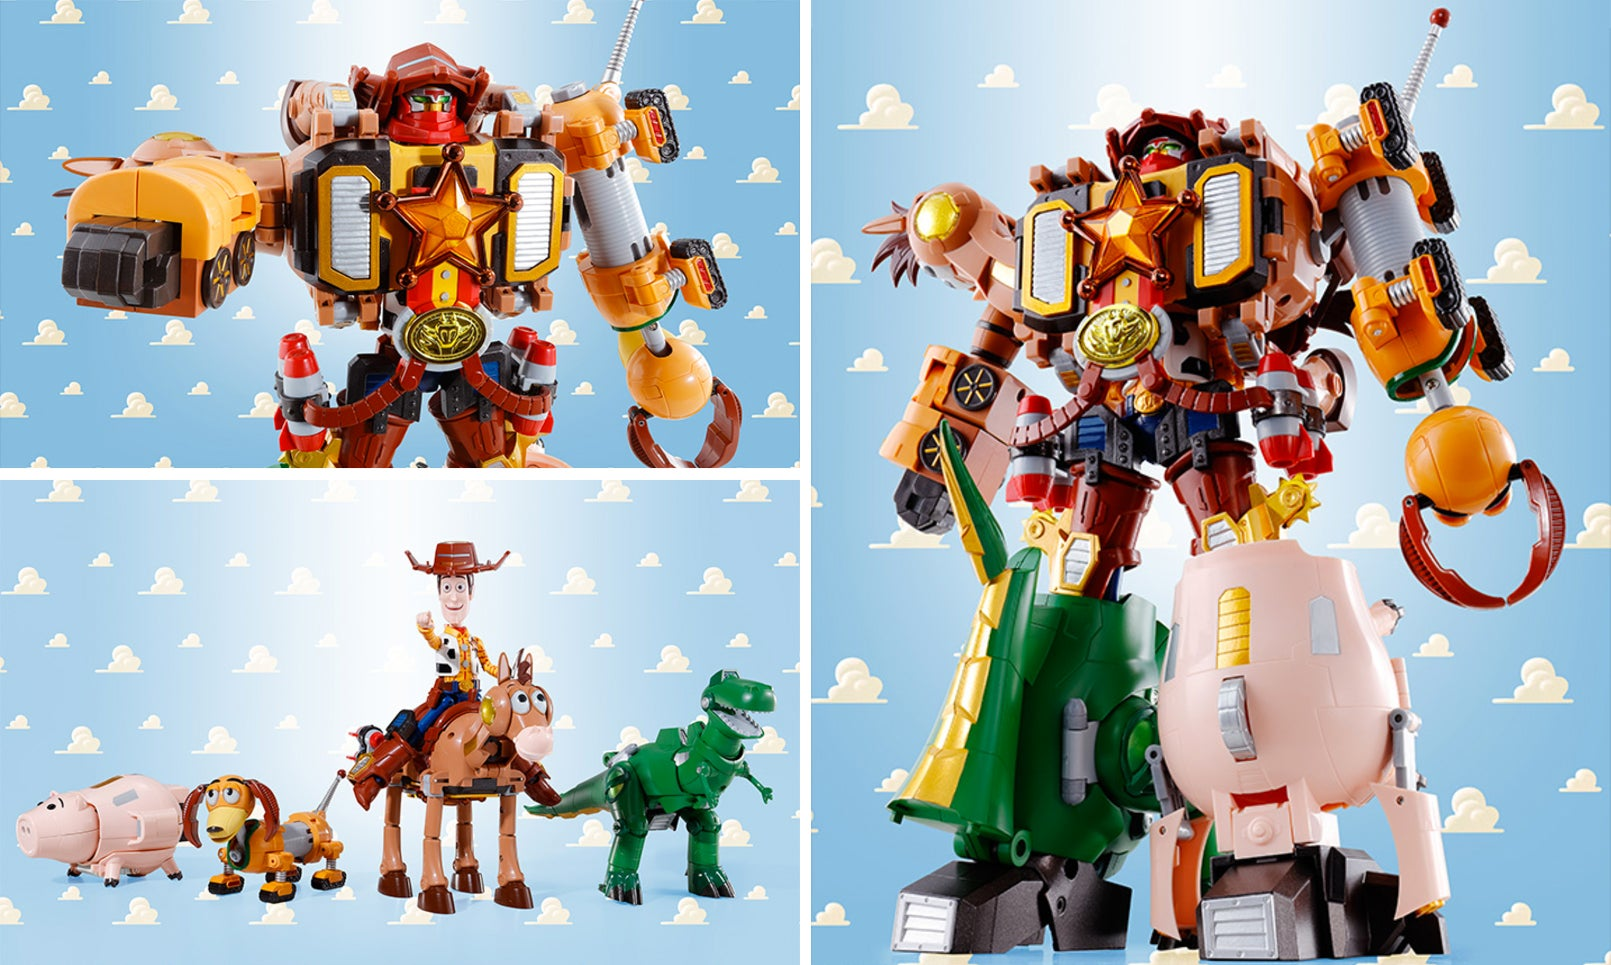 This Toy StoryVoltron Might Be Cooler Than The Original Voltron